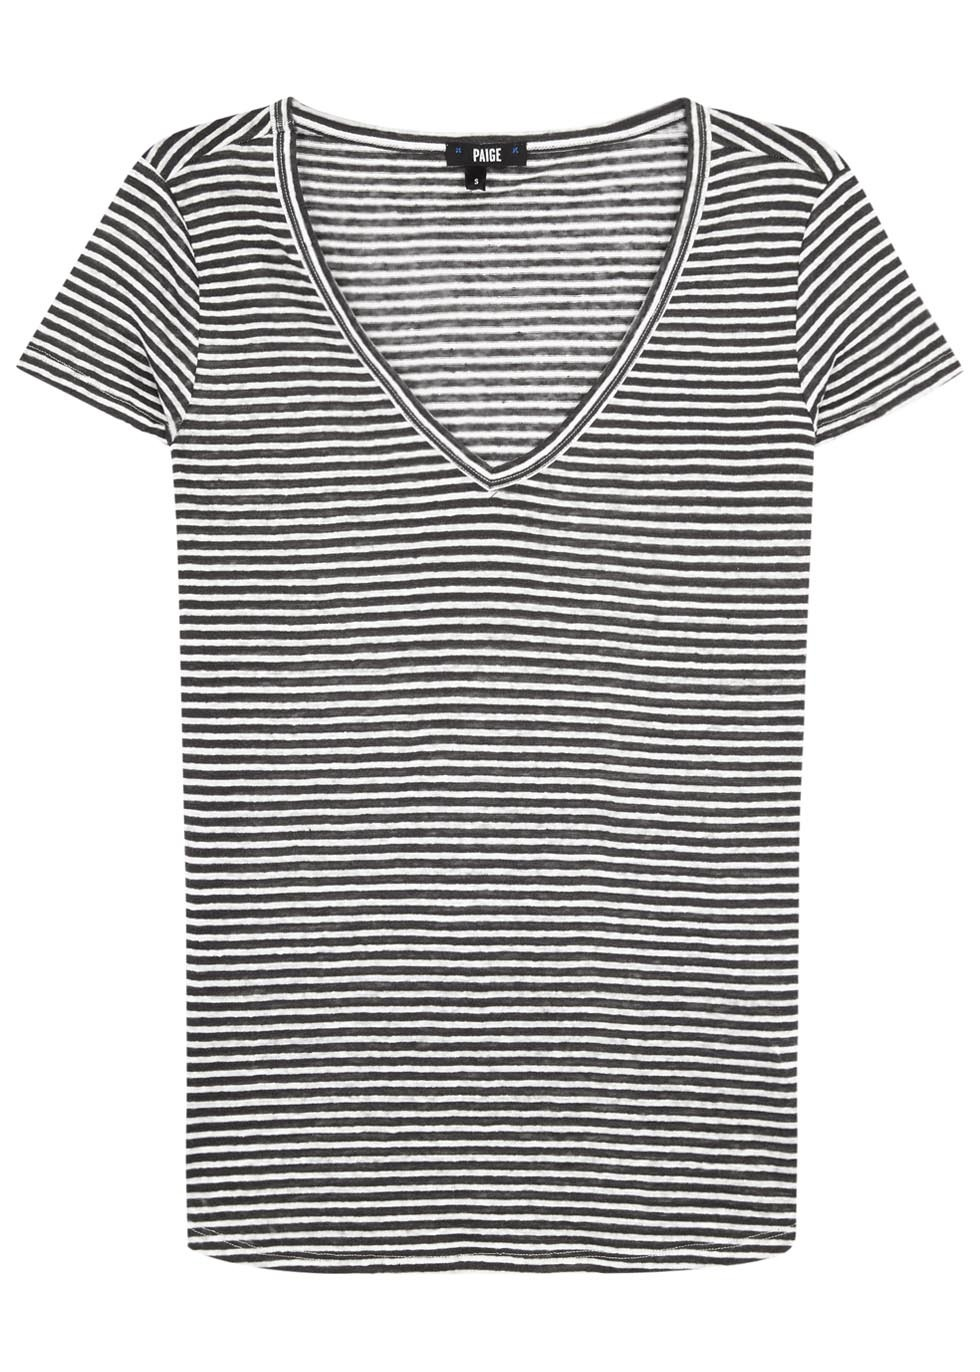 Lynnea Striped Linen T Shirt - neckline: v-neck; pattern: horizontal stripes; style: t-shirt; secondary colour: white; predominant colour: navy; occasions: casual; length: standard; fibres: linen - 100%; fit: body skimming; sleeve length: short sleeve; sleeve style: standard; texture group: linen; pattern type: fabric; multicoloured: multicoloured; season: s/s 2016; wardrobe: basic